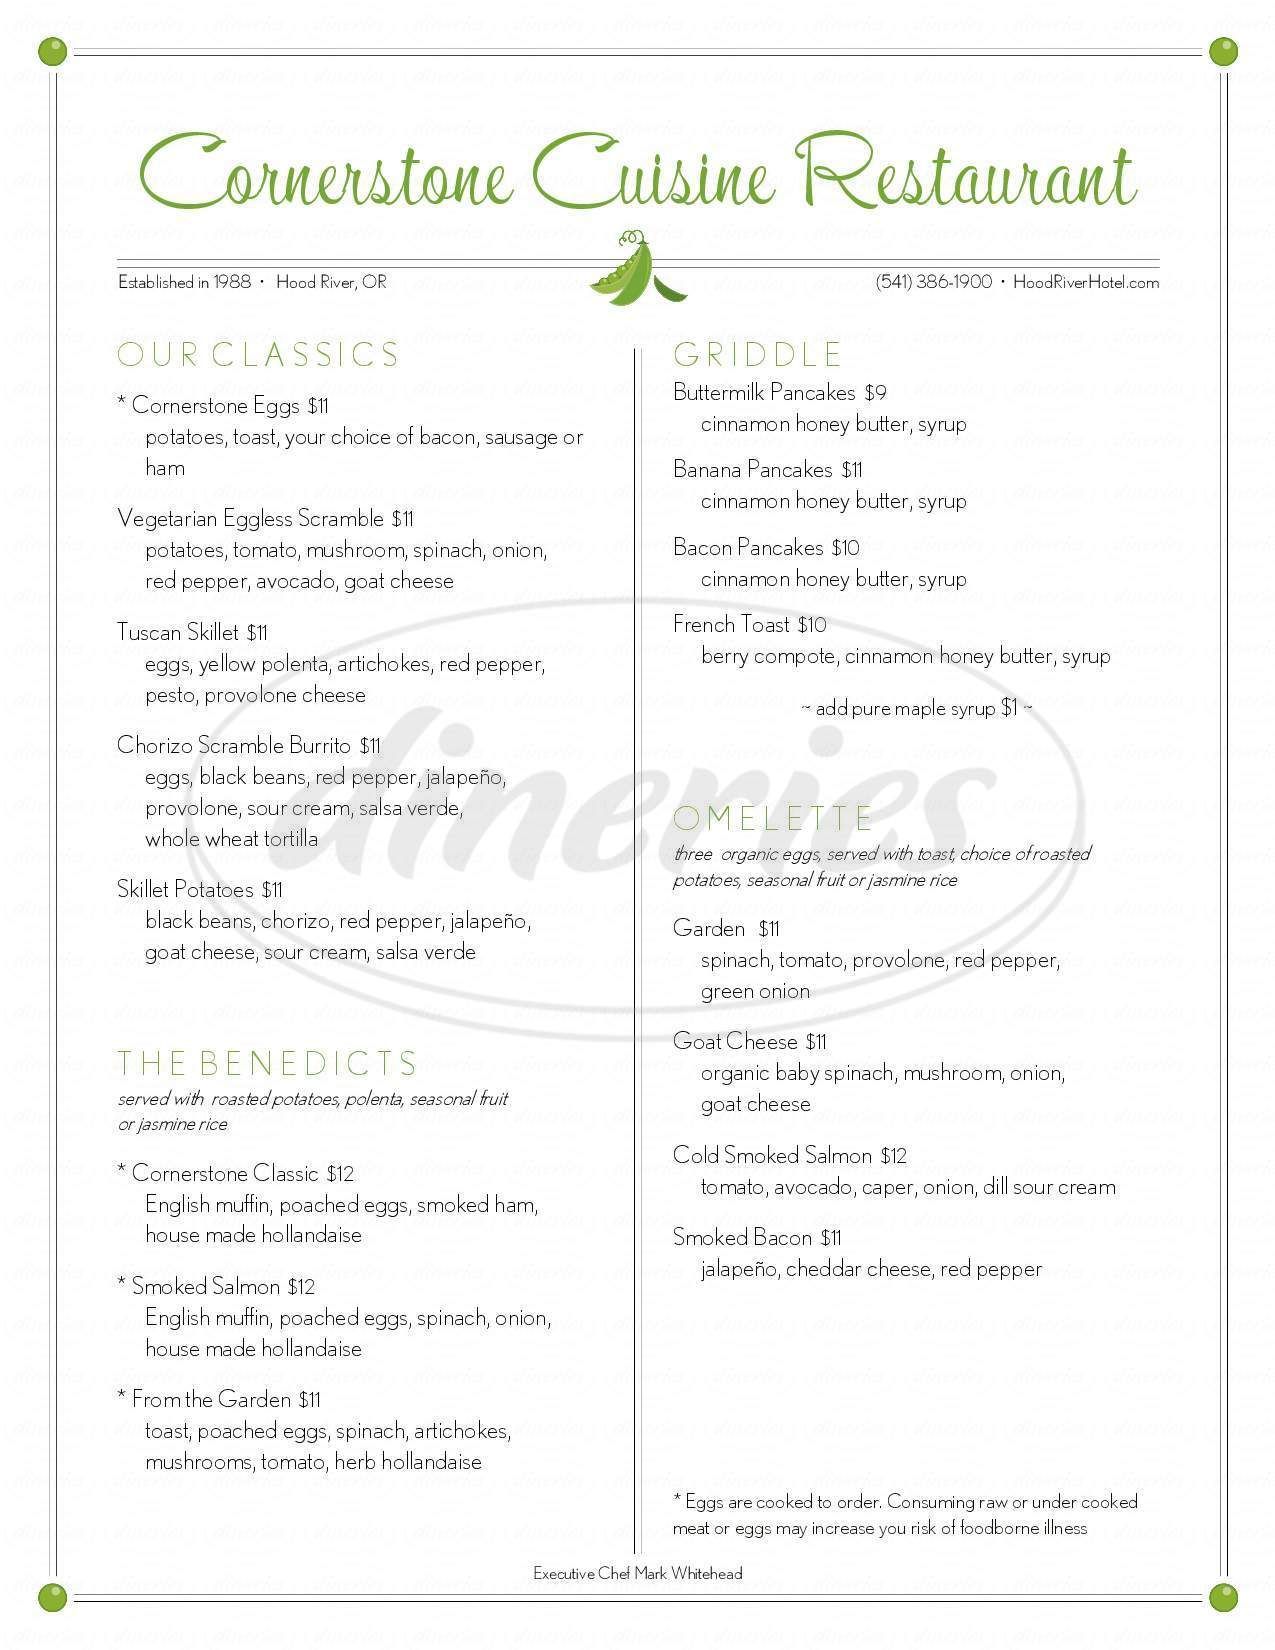 menu for Cornerstone Cuisine Restaurant